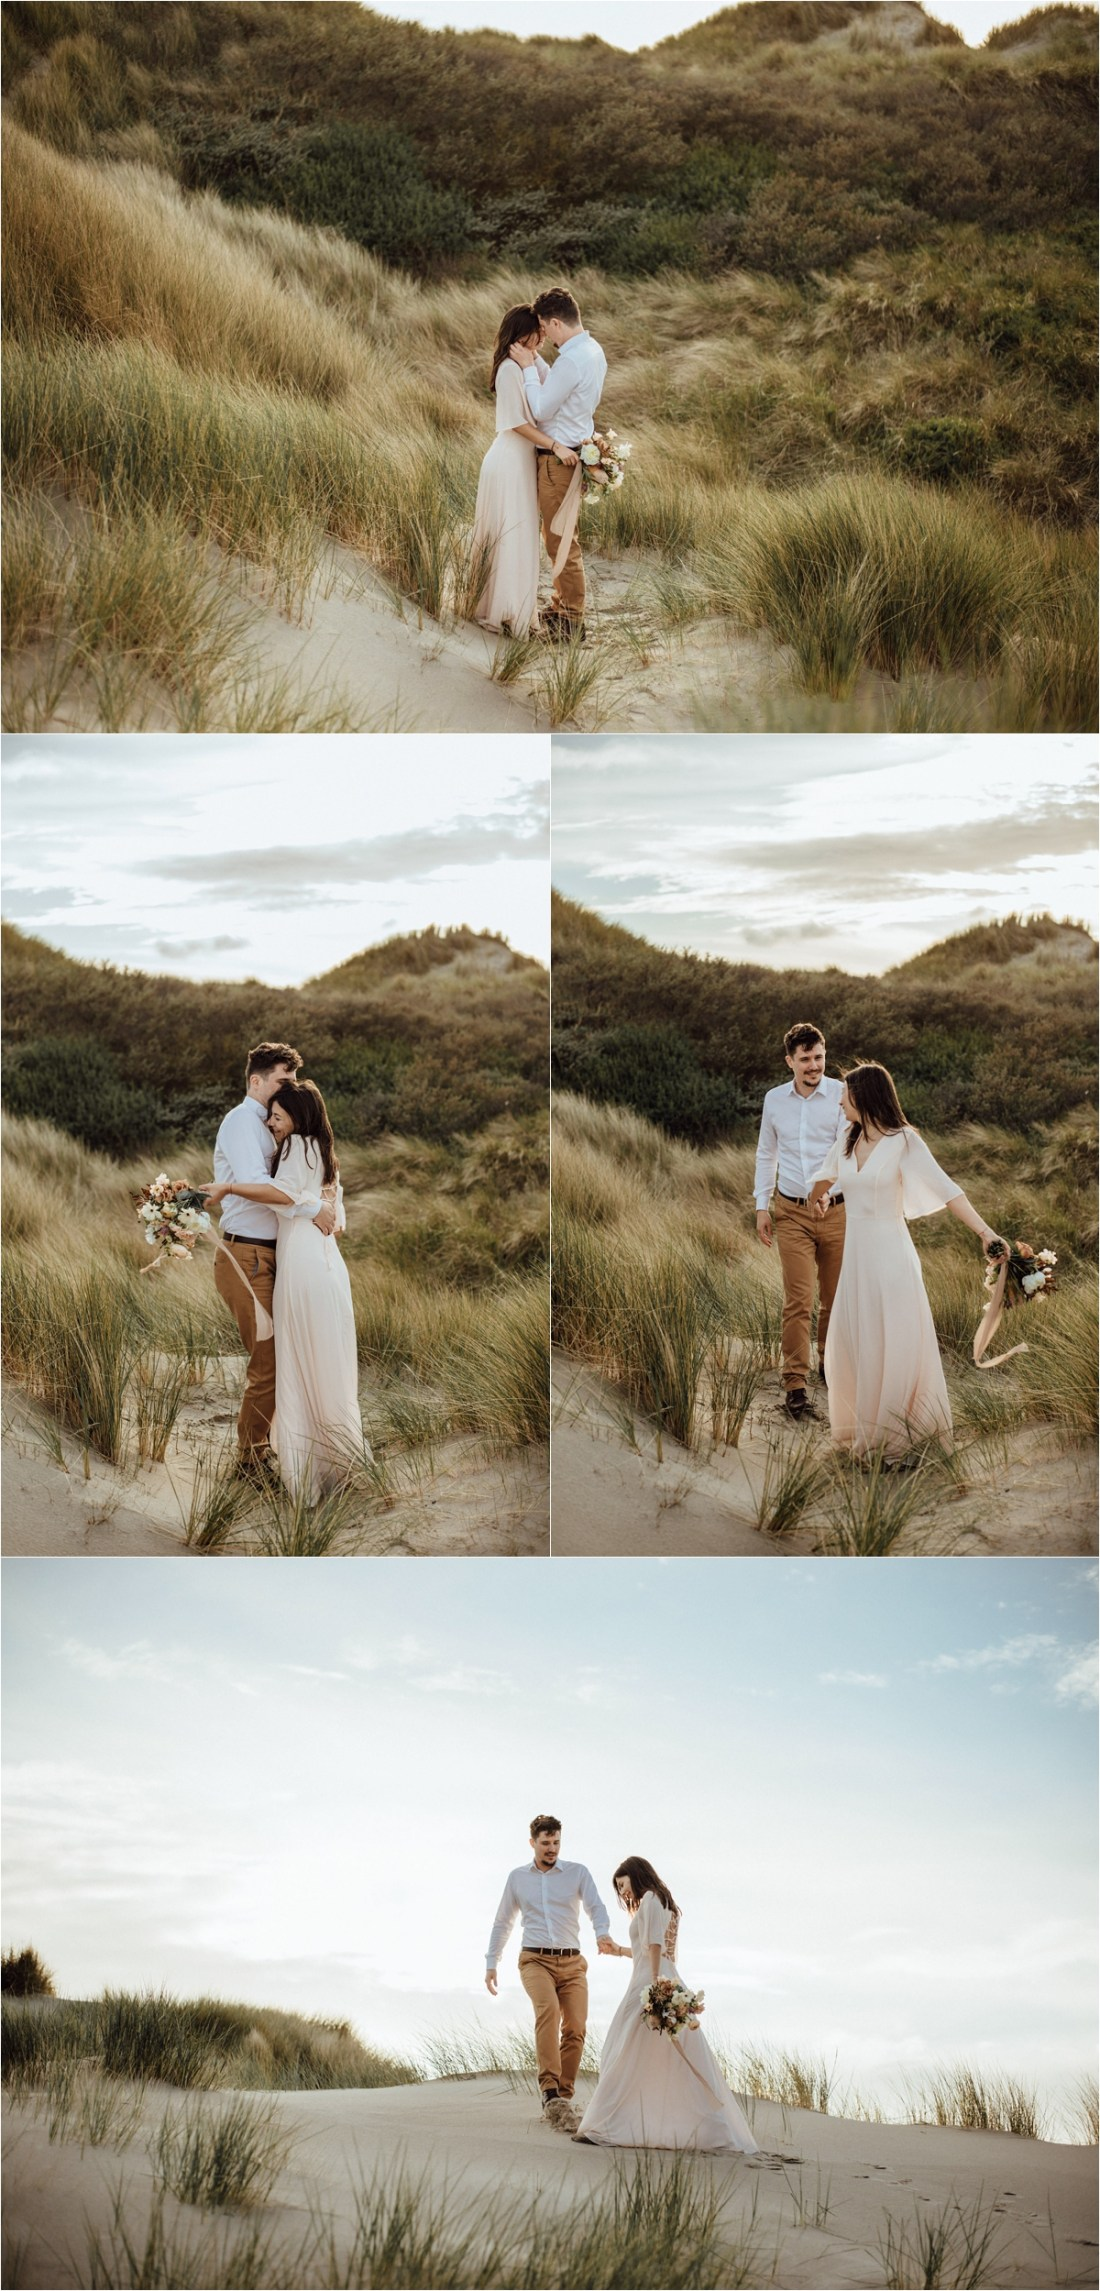 Newly married couple walk through the long grass on the sand dunes in the Netherlands. Photography by The Wandering Childe